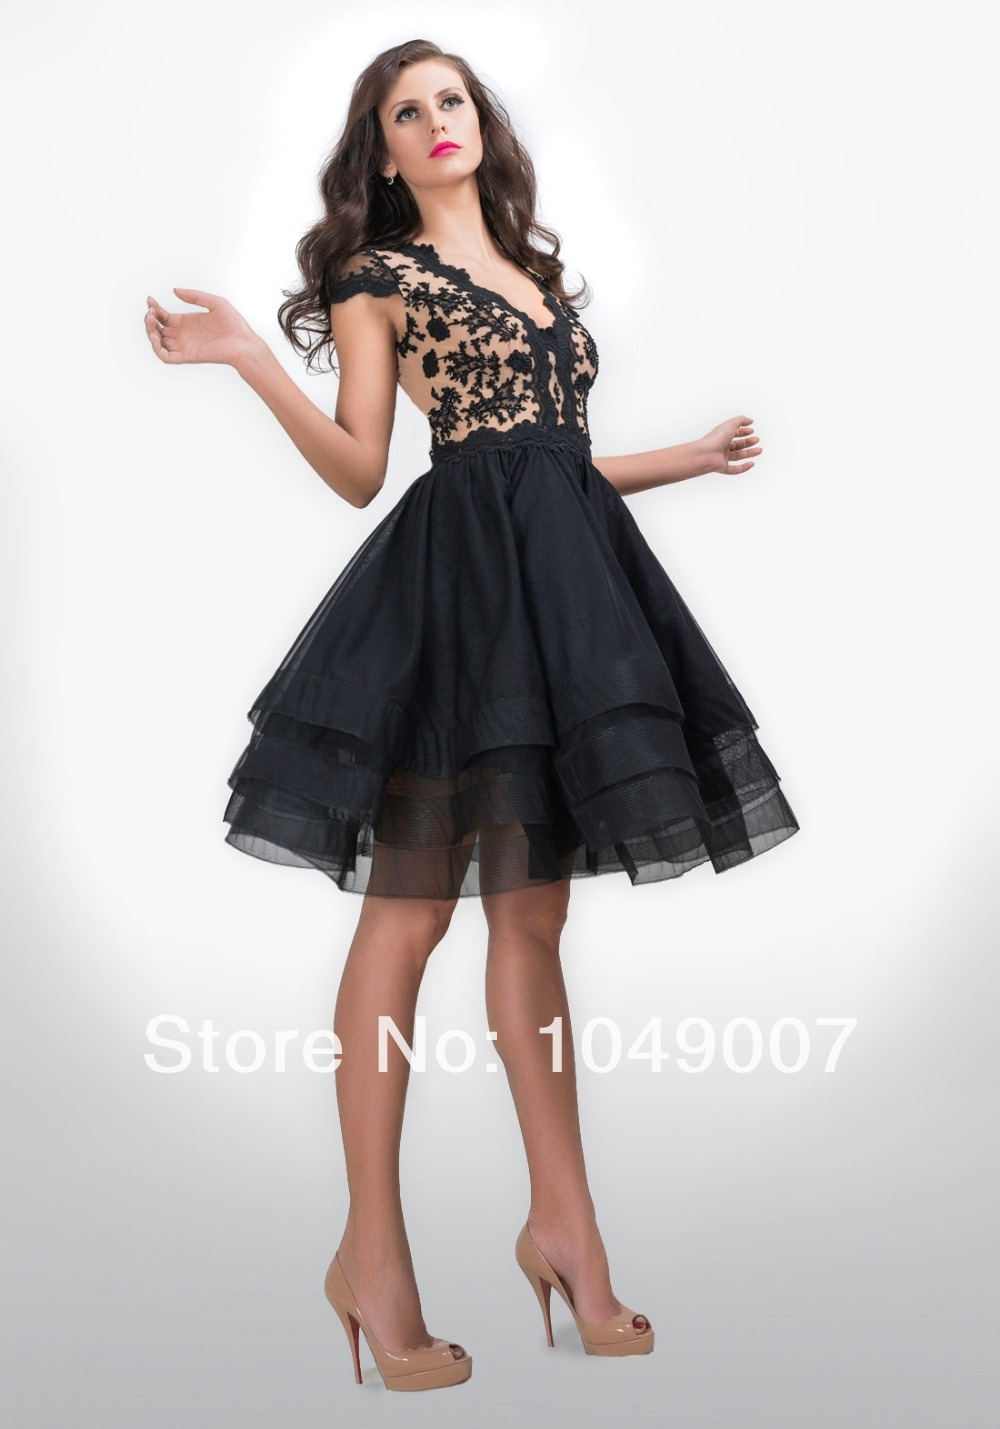 Aliexpress.com : Buy 2014 Custom Made Cap Sleeves Lace Short Prom ...